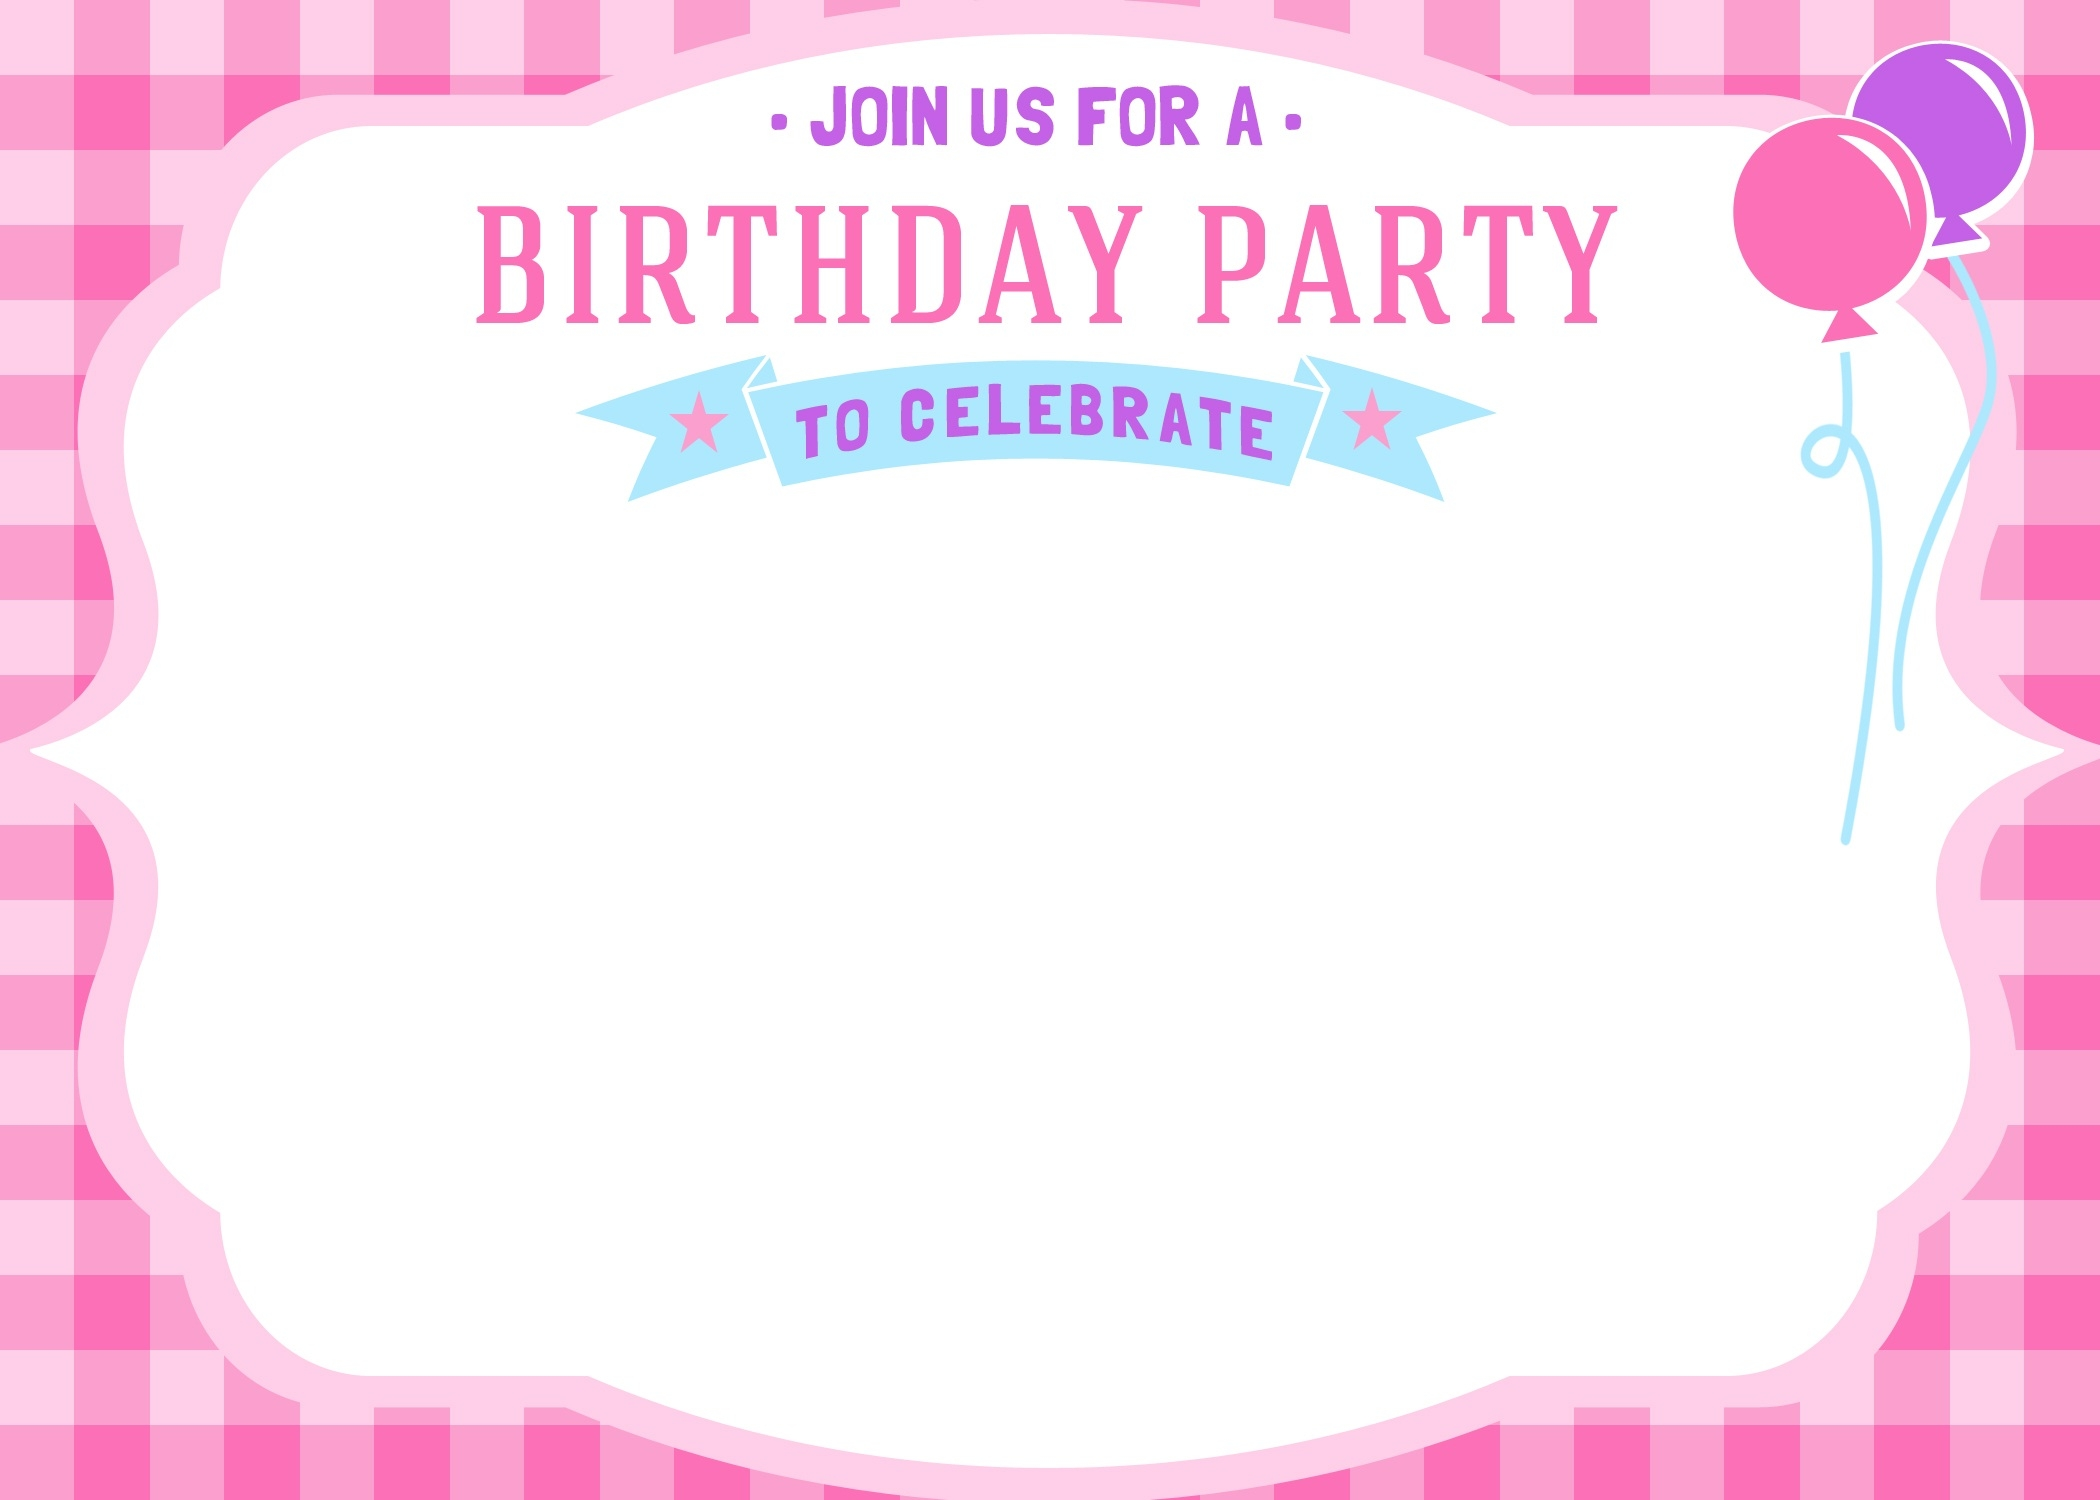 pictures for birthday invitation cards ; birthday-invitations-for-girls-birthday-invitations-for-girls-for-intended-for-birthday-invitation-cards-templates-for-girls